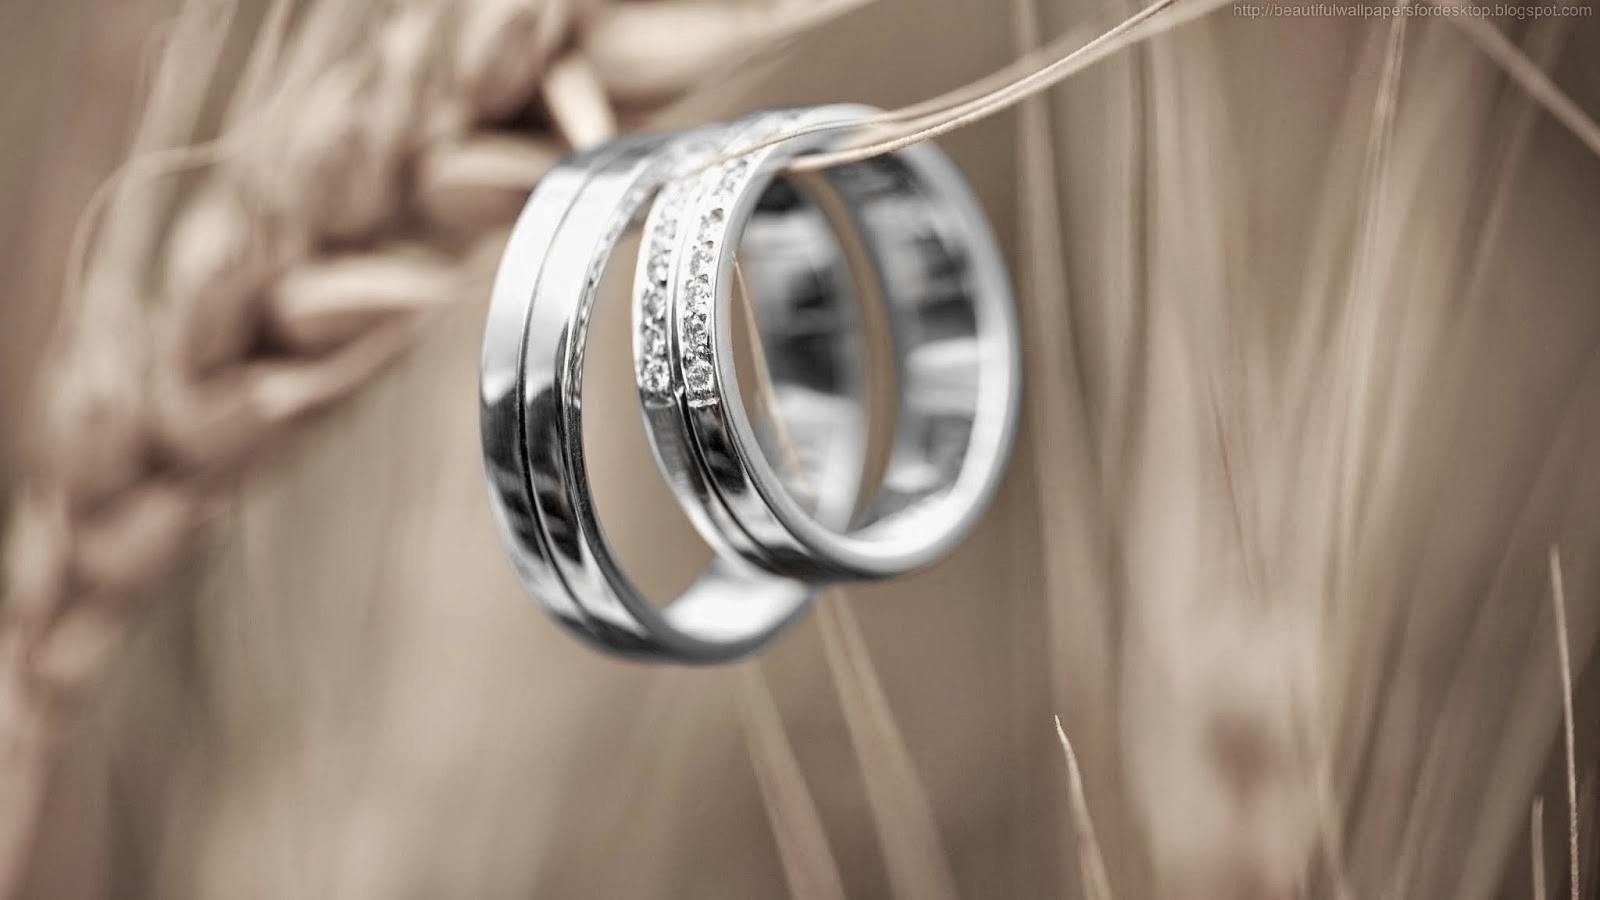 Love Jewellery Wallpaper : Beautiful Wallpapers: Engagement Rings HD Wallpapers